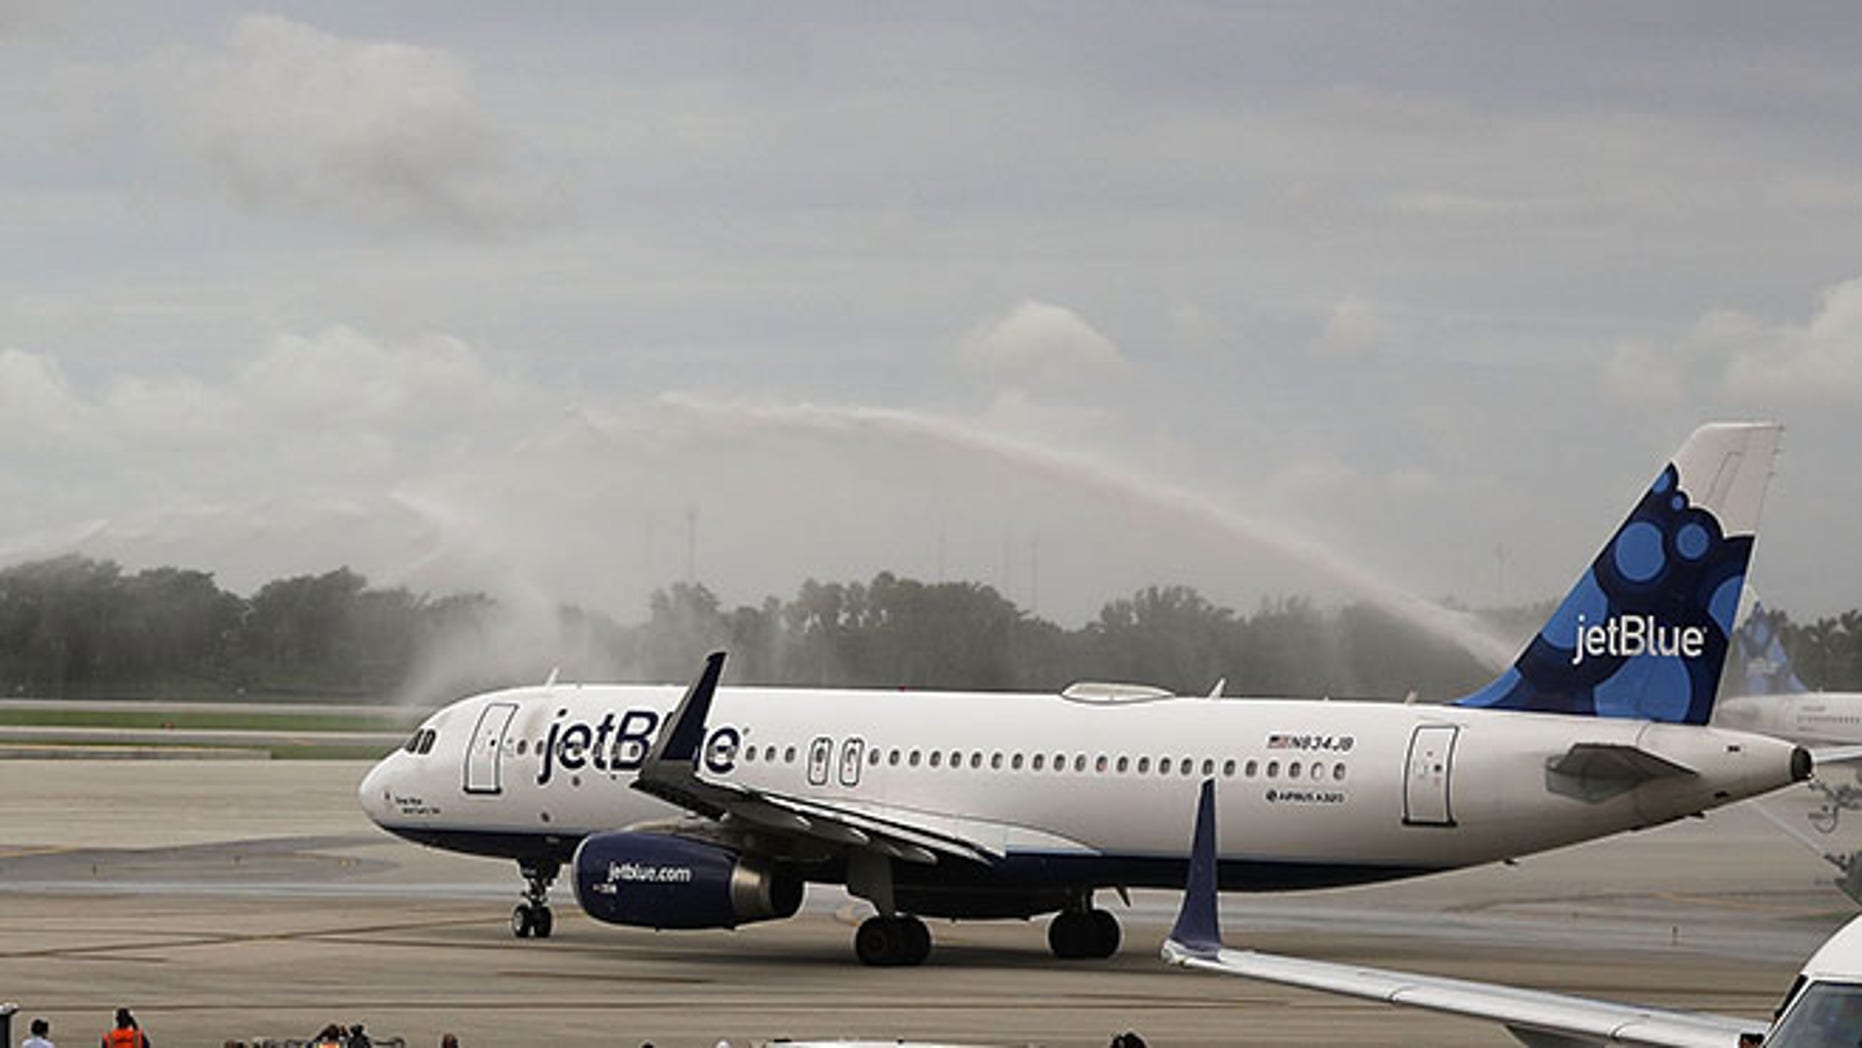 FORT LAUDERDALE, FL - AUGUST 31:  Workers watch as JetBlue Flight 387 is given a water cannon salute as it prepares for take off to become the first scheduled commercial flight to Cuba since 1961 on August 31, 2016 in Fort Lauderdale, Florida. JetBlue which hopes to have as many as 110 daily flights is the first U.S. airline to resume regularly scheduled airline service under new rules allowing Americans greater access to Cuba.  (Photo by Joe Raedle/Getty Images)